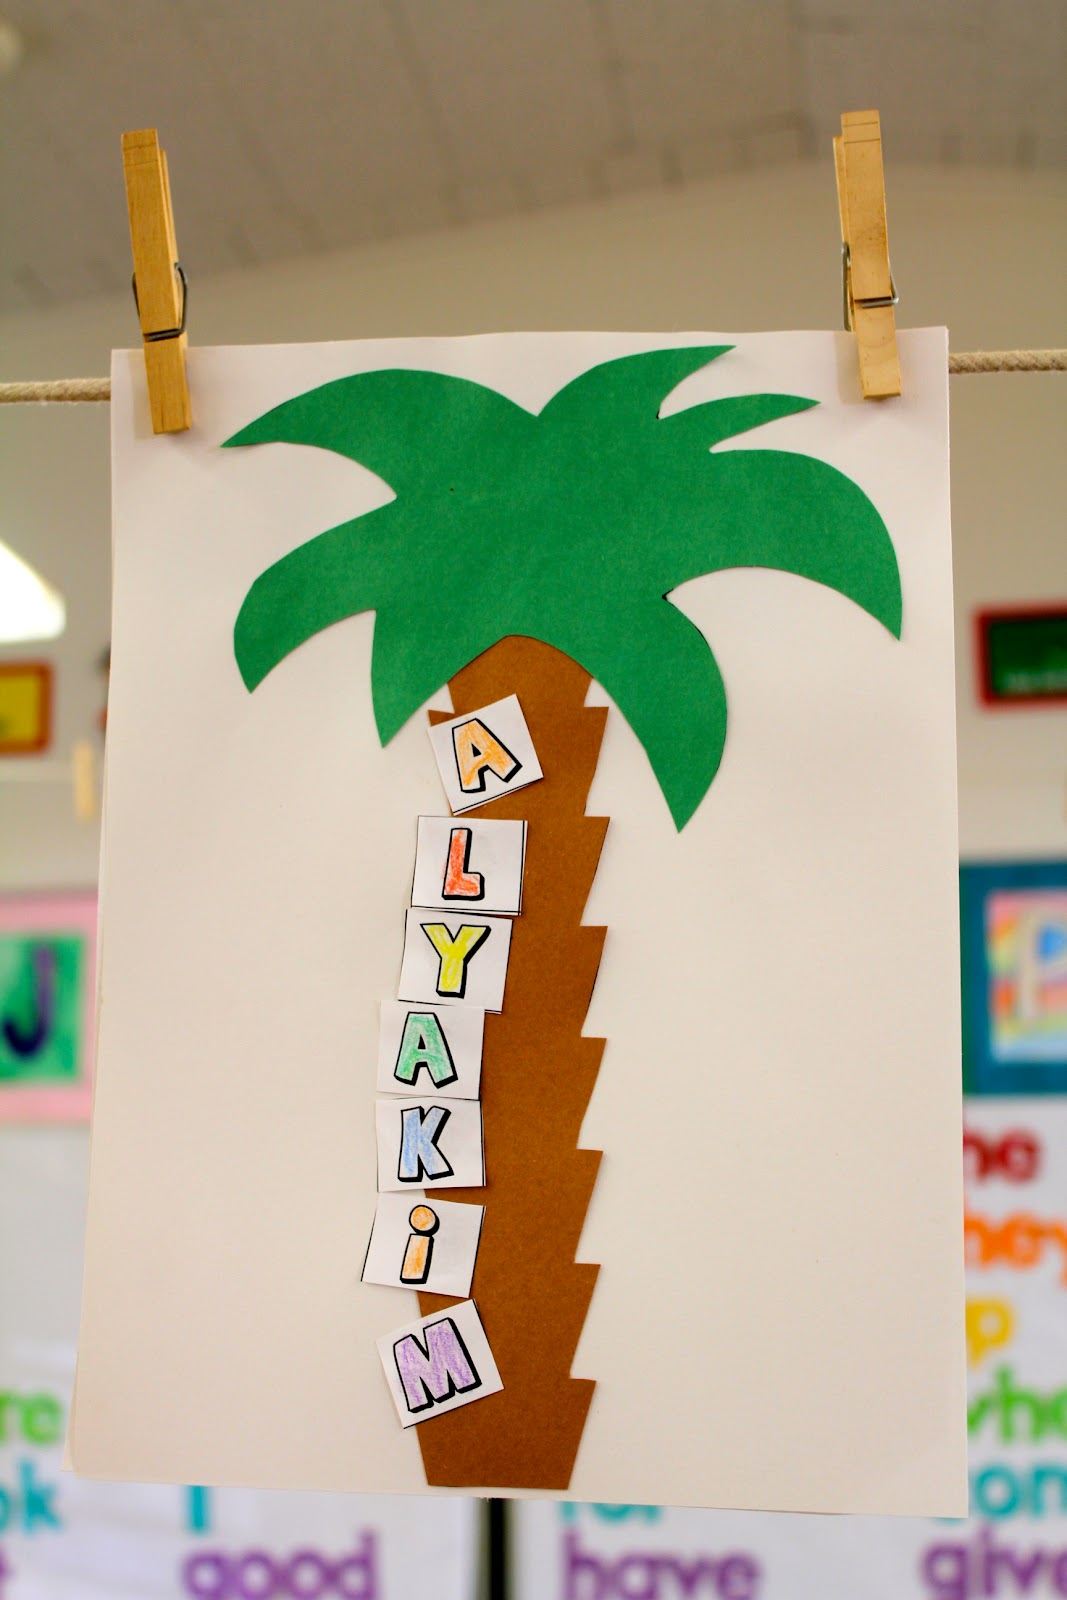 Mrs fullmers kinders beginning of the year art projects we also read chick chick boom boom and then the students use the letters in their names to climb up the coconut tree you can download the template here maxwellsz